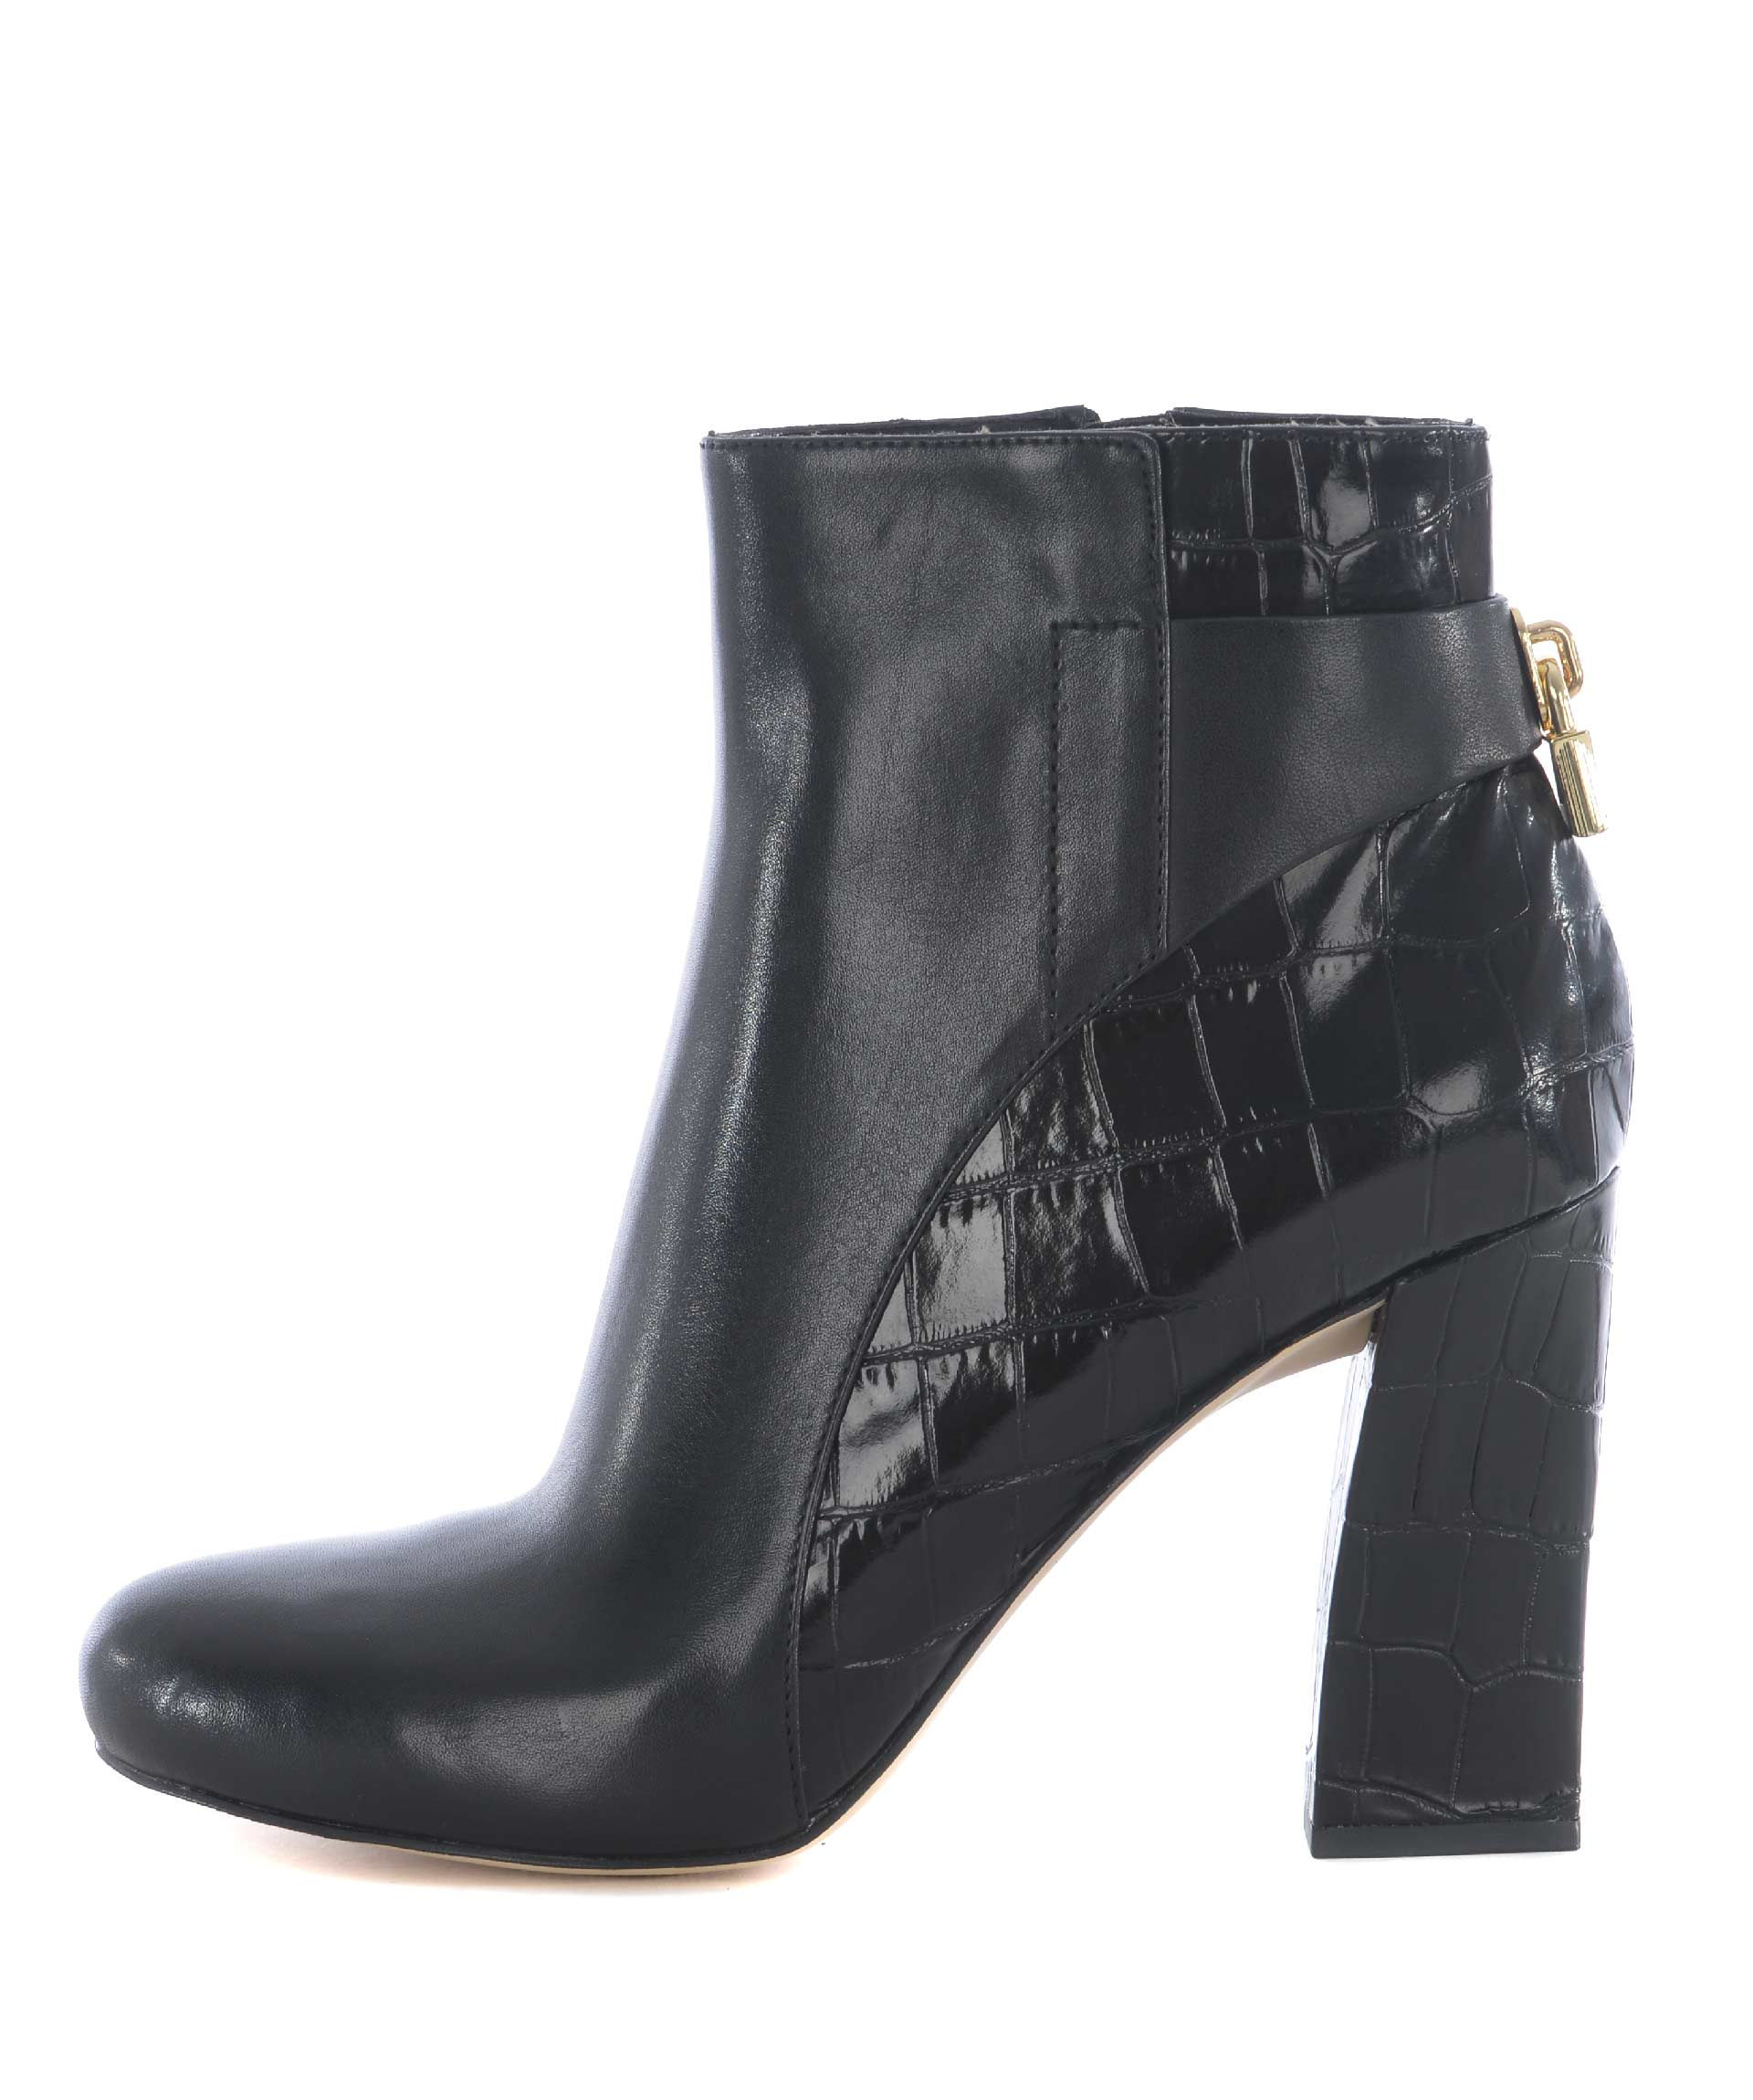 Michael Kors Mira Ankle Boots